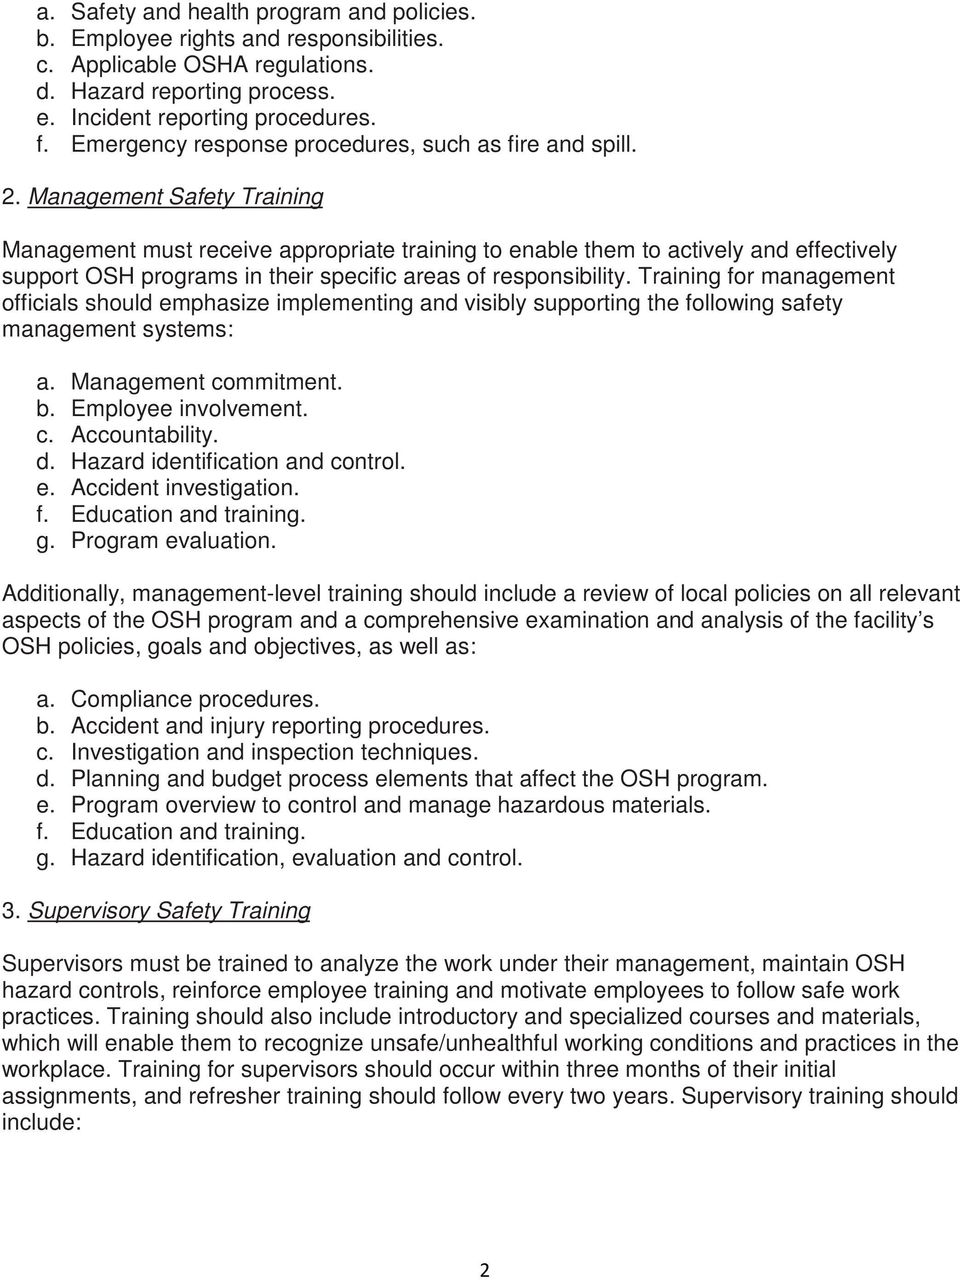 Management Safety Training Management must receive appropriate training to enable them to actively and effectively support OSH programs in their specific areas of responsibility.